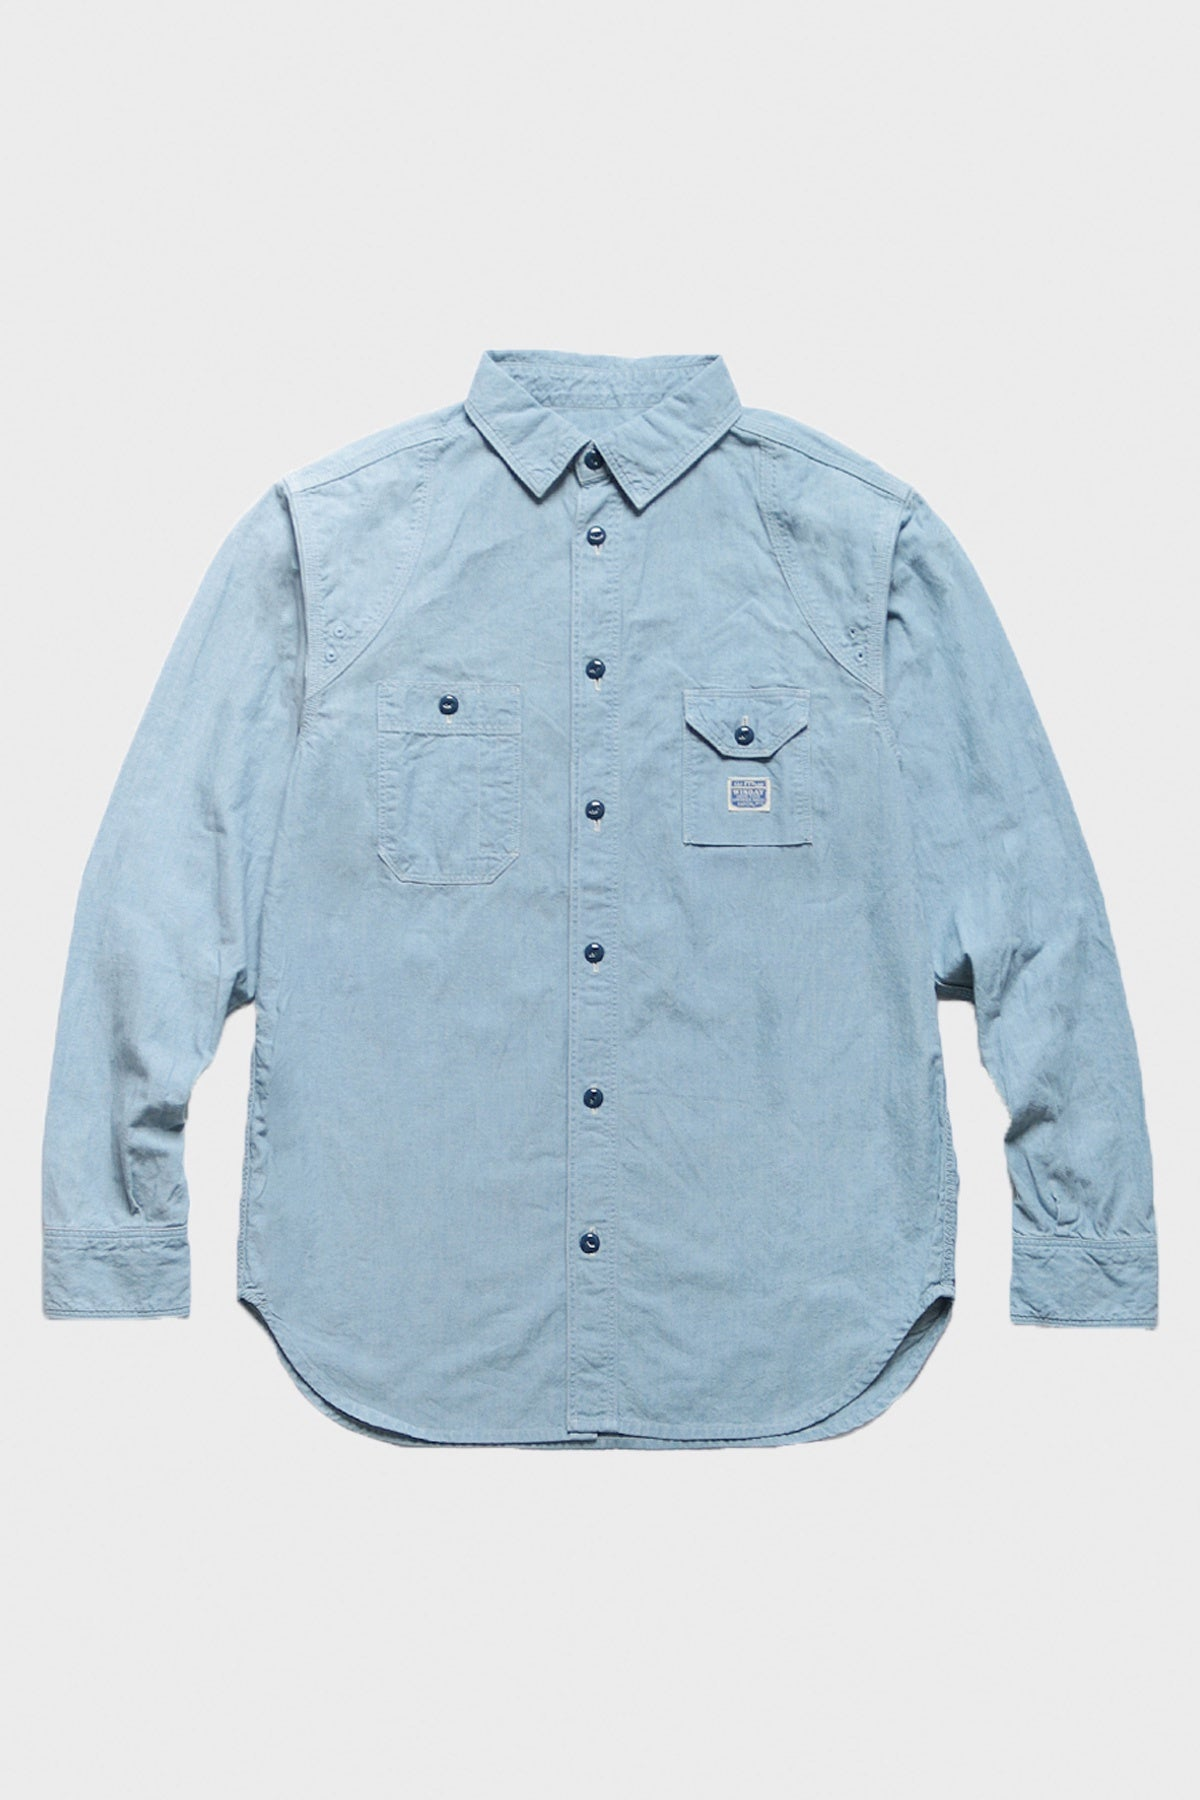 Kapital - Chambray MOJITO MAN Work Shirt - Sax - Canoe Club